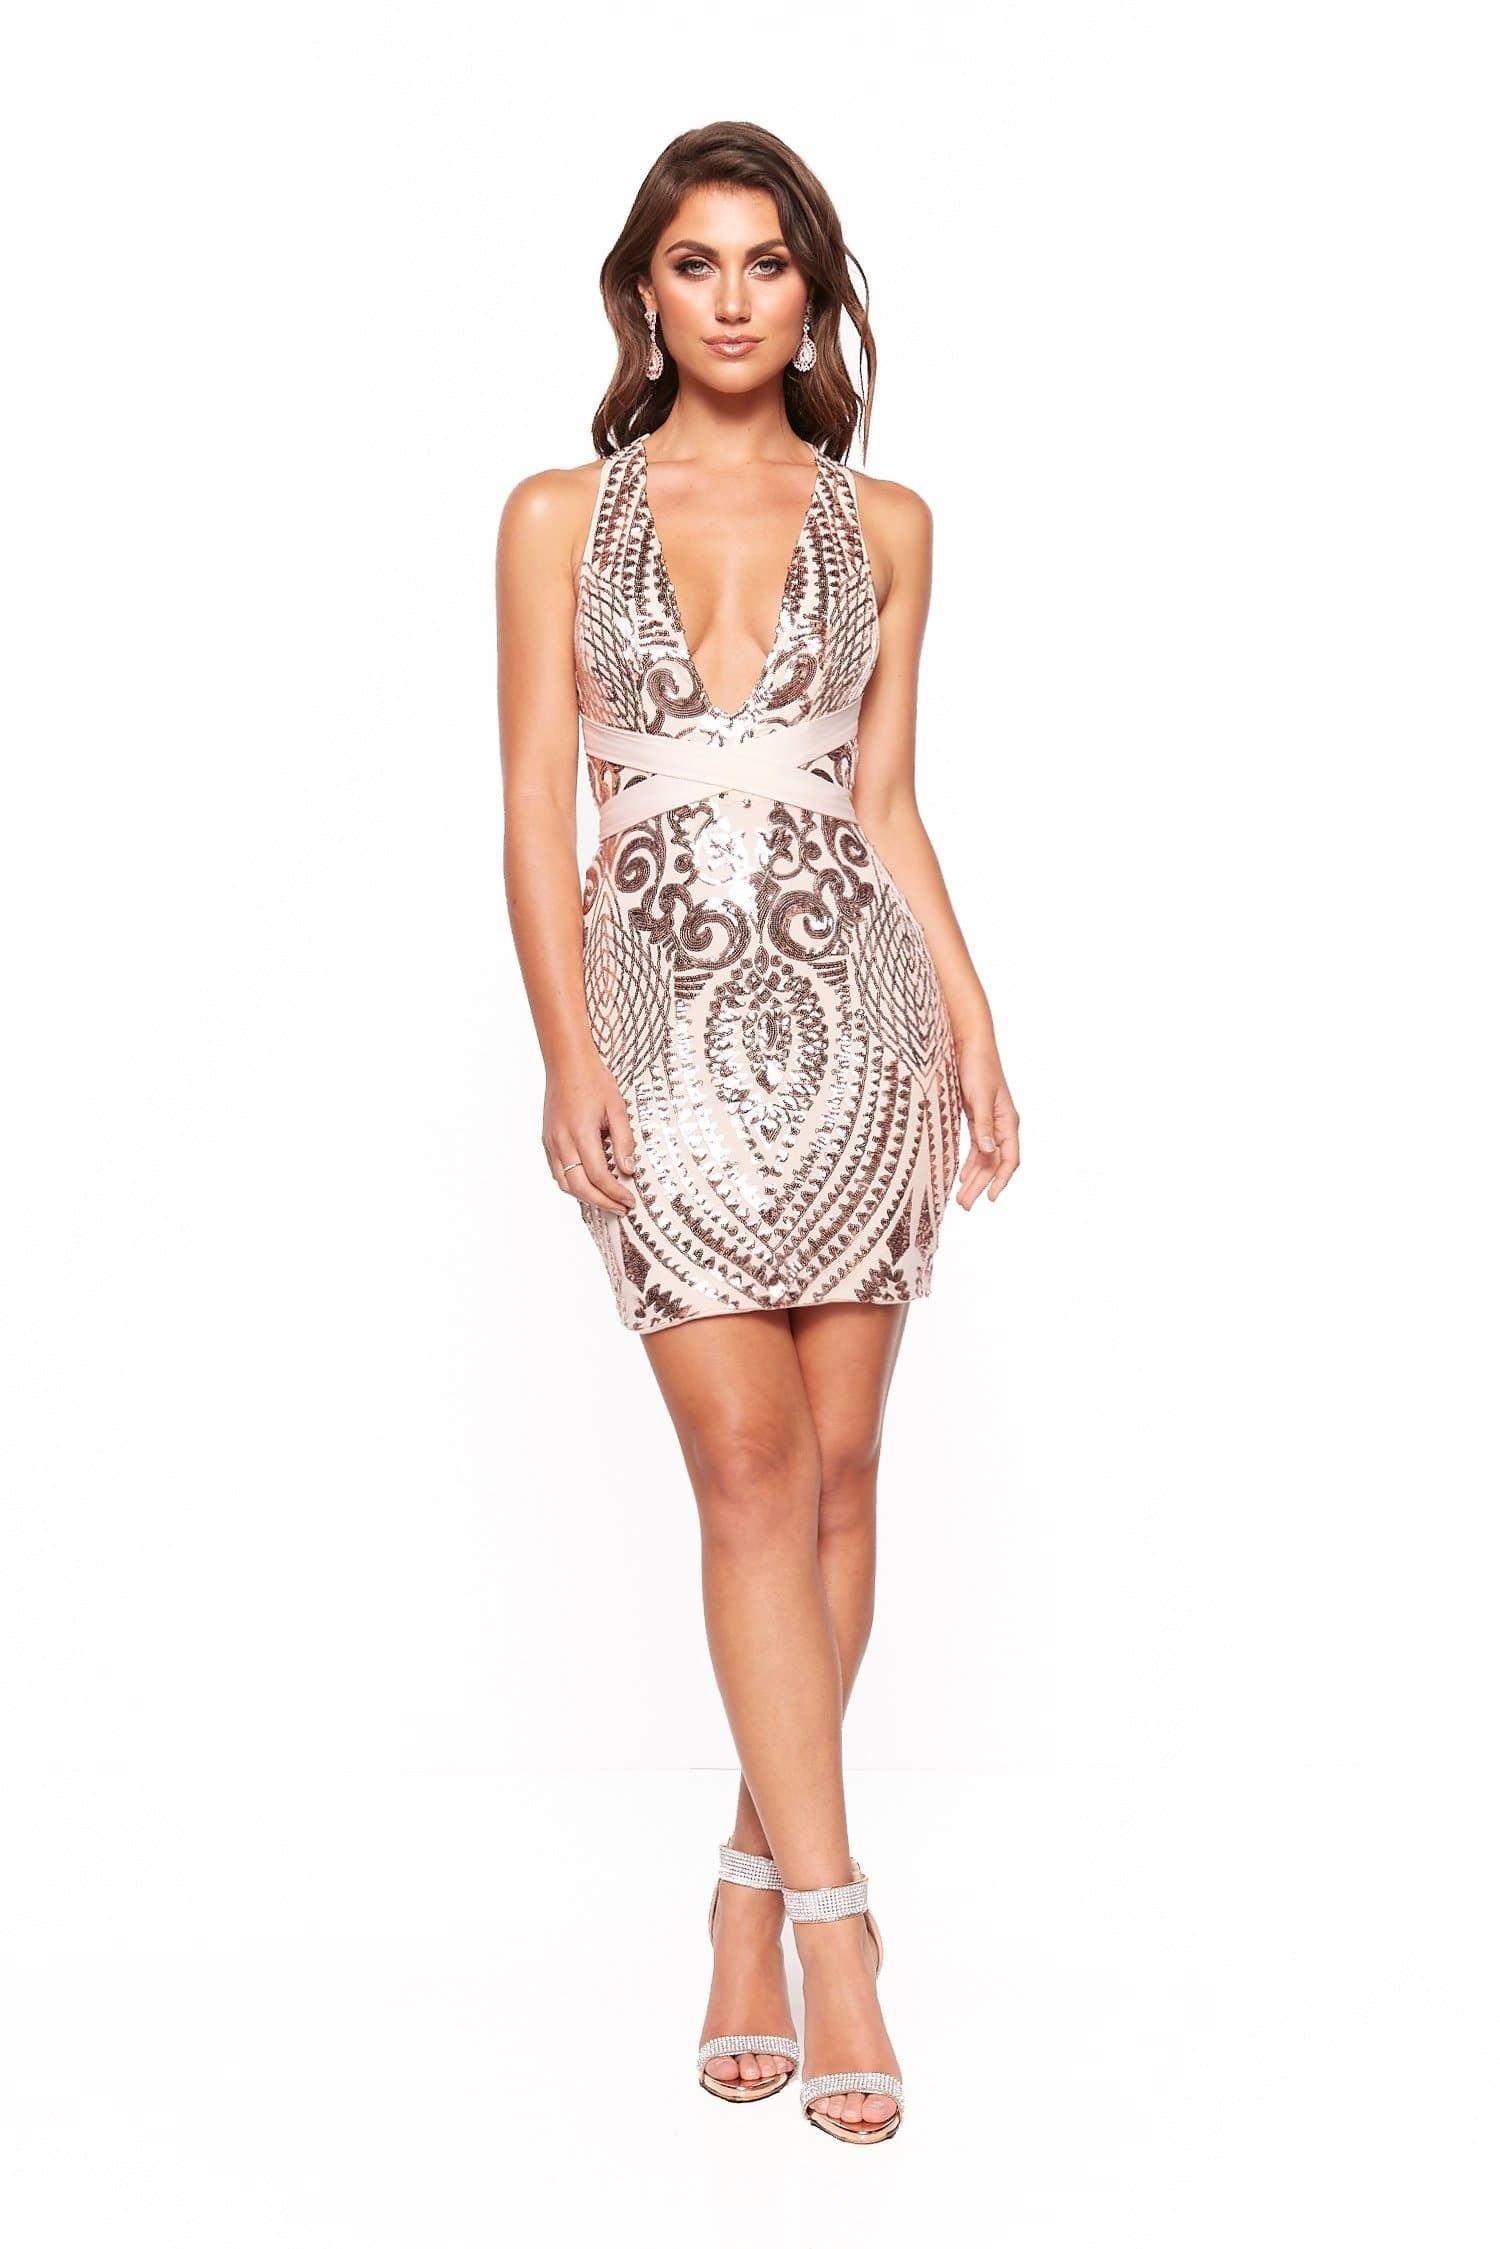 A&N Aaliyah Sequin Multiway Cocktail Dress - Rose Gold